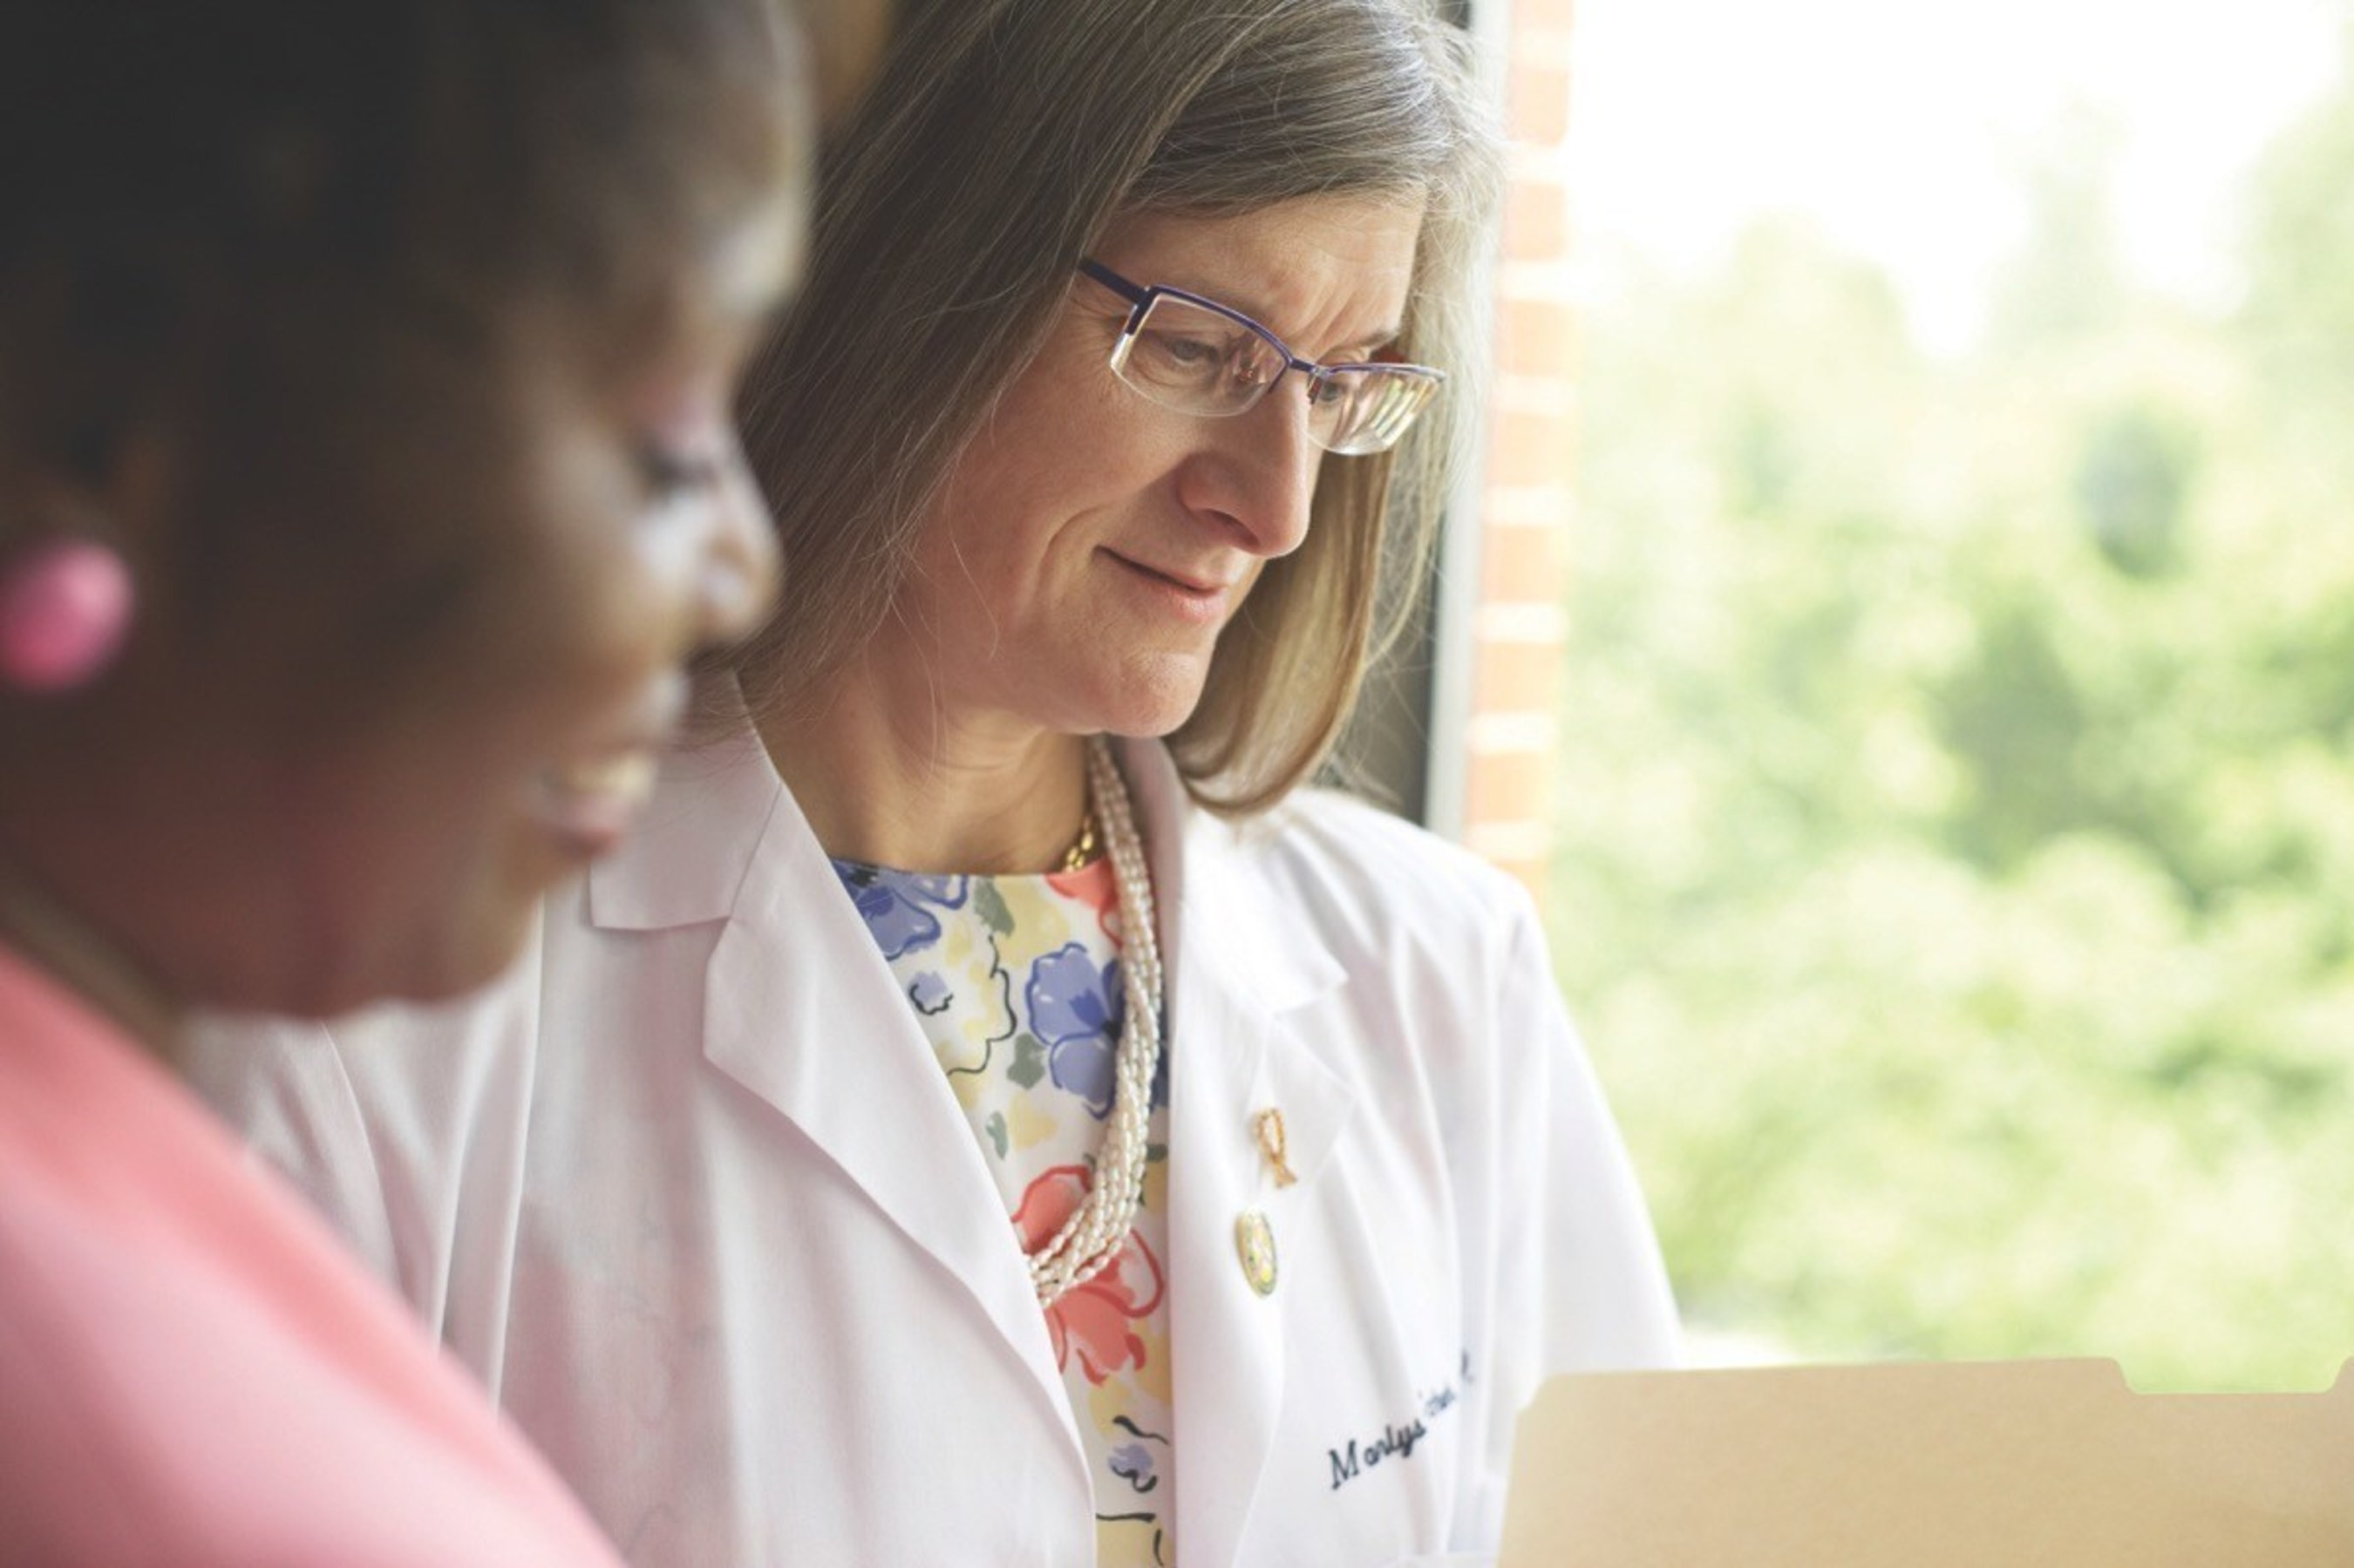 Dr. Marlys Schuh (right), is an oncologic breast surgeon and co-founder of Gateway to Hope.  The organization helps underinsured and uninsured individuals diagnosed with or at high risk for breast cancer throughout Missouri and Illinois.  Call the Gateway to Hope Breast Cancer Lifeline (314-569-1113) or visit www.gthstl.org for more information.